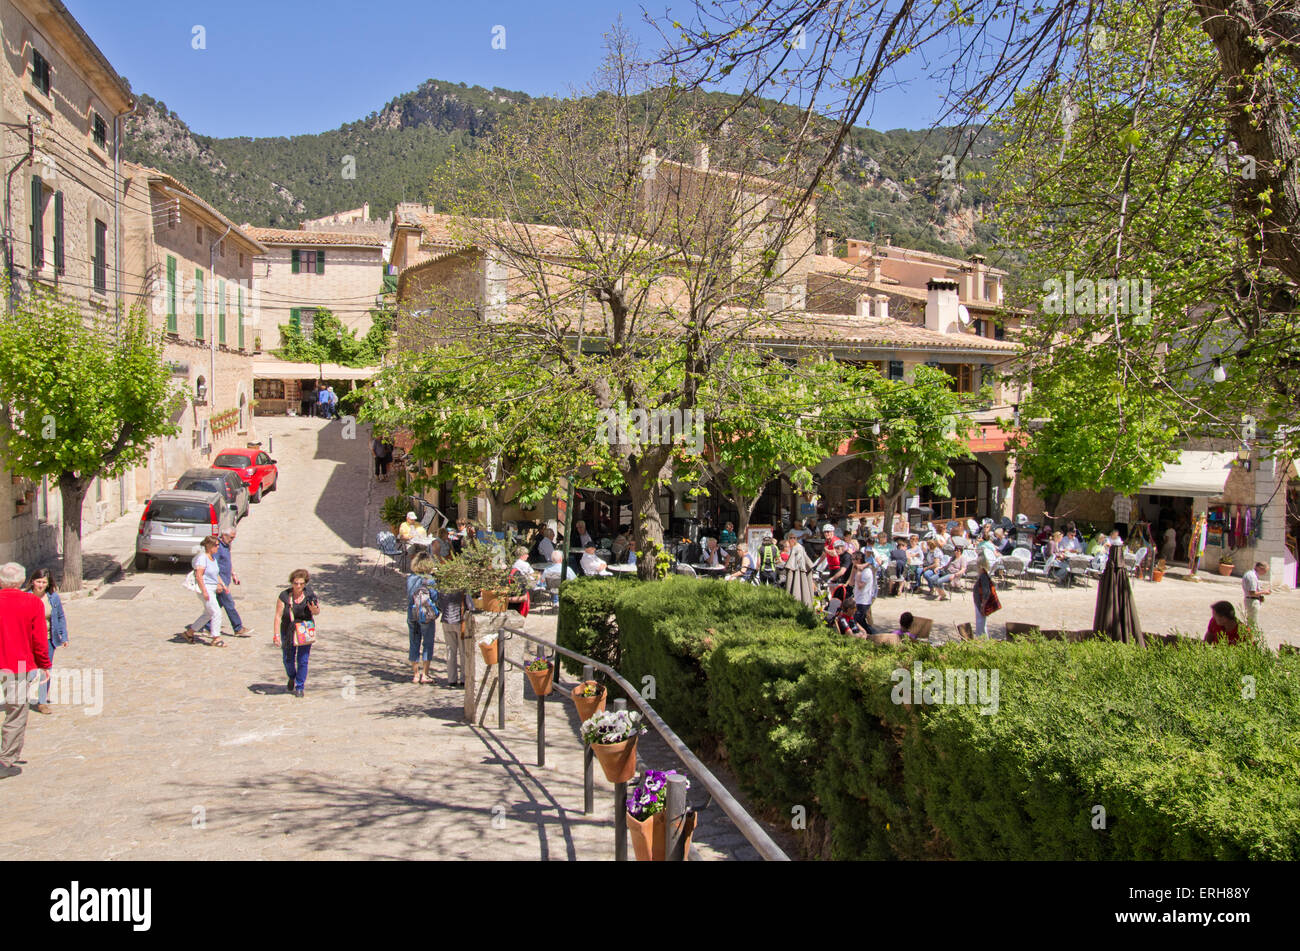 Valldemossa old town - Stock Image